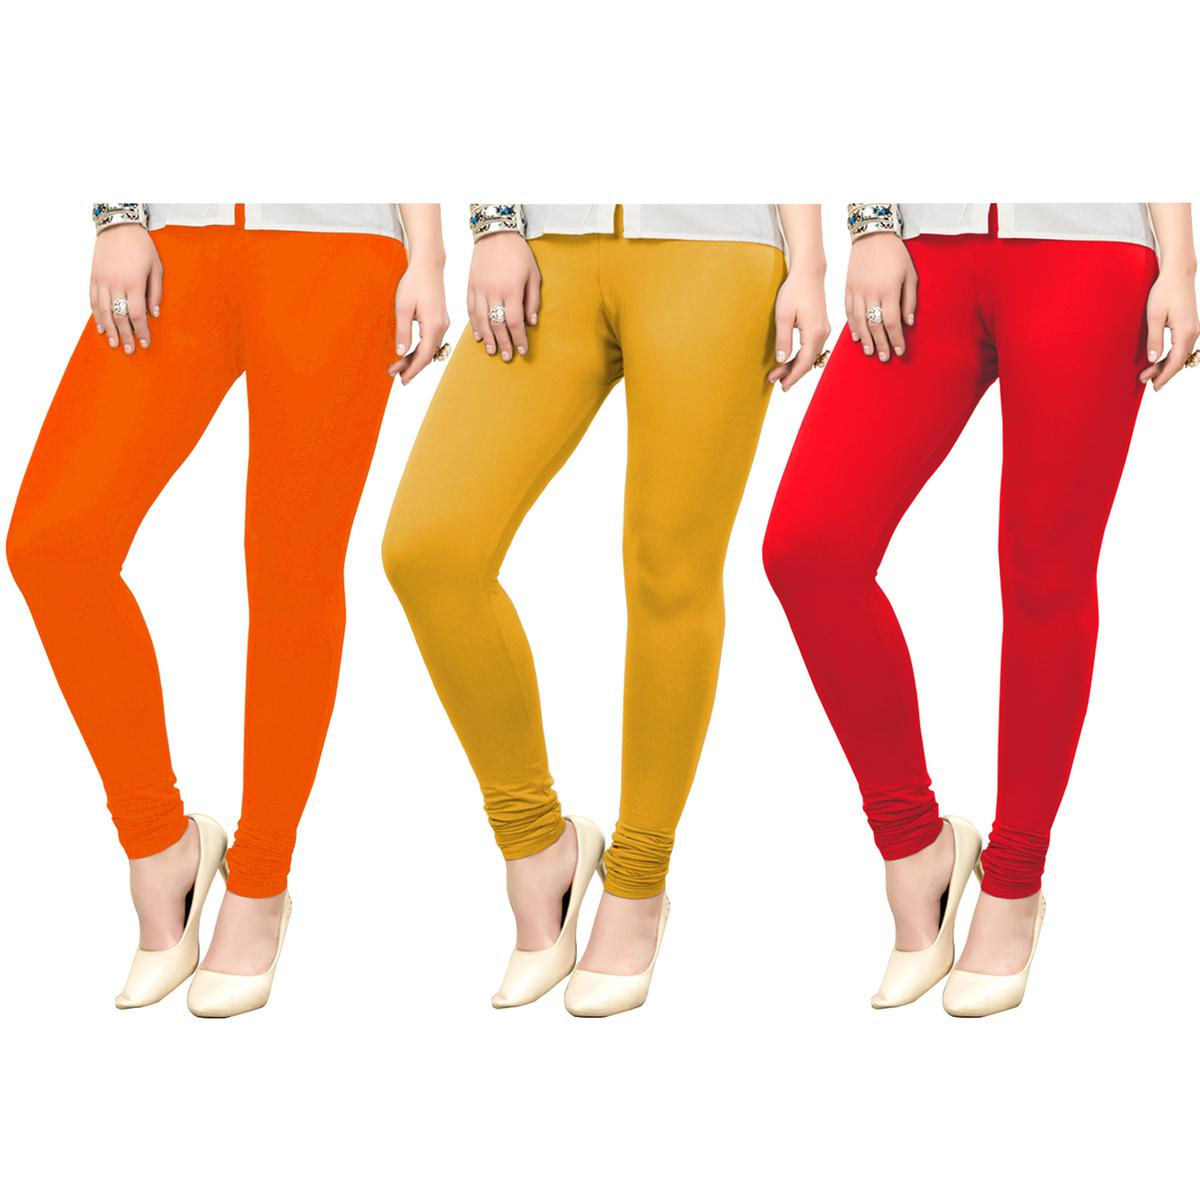 Innovative Casual Wear Ankle Length Cotton Leggings - Pack of 3